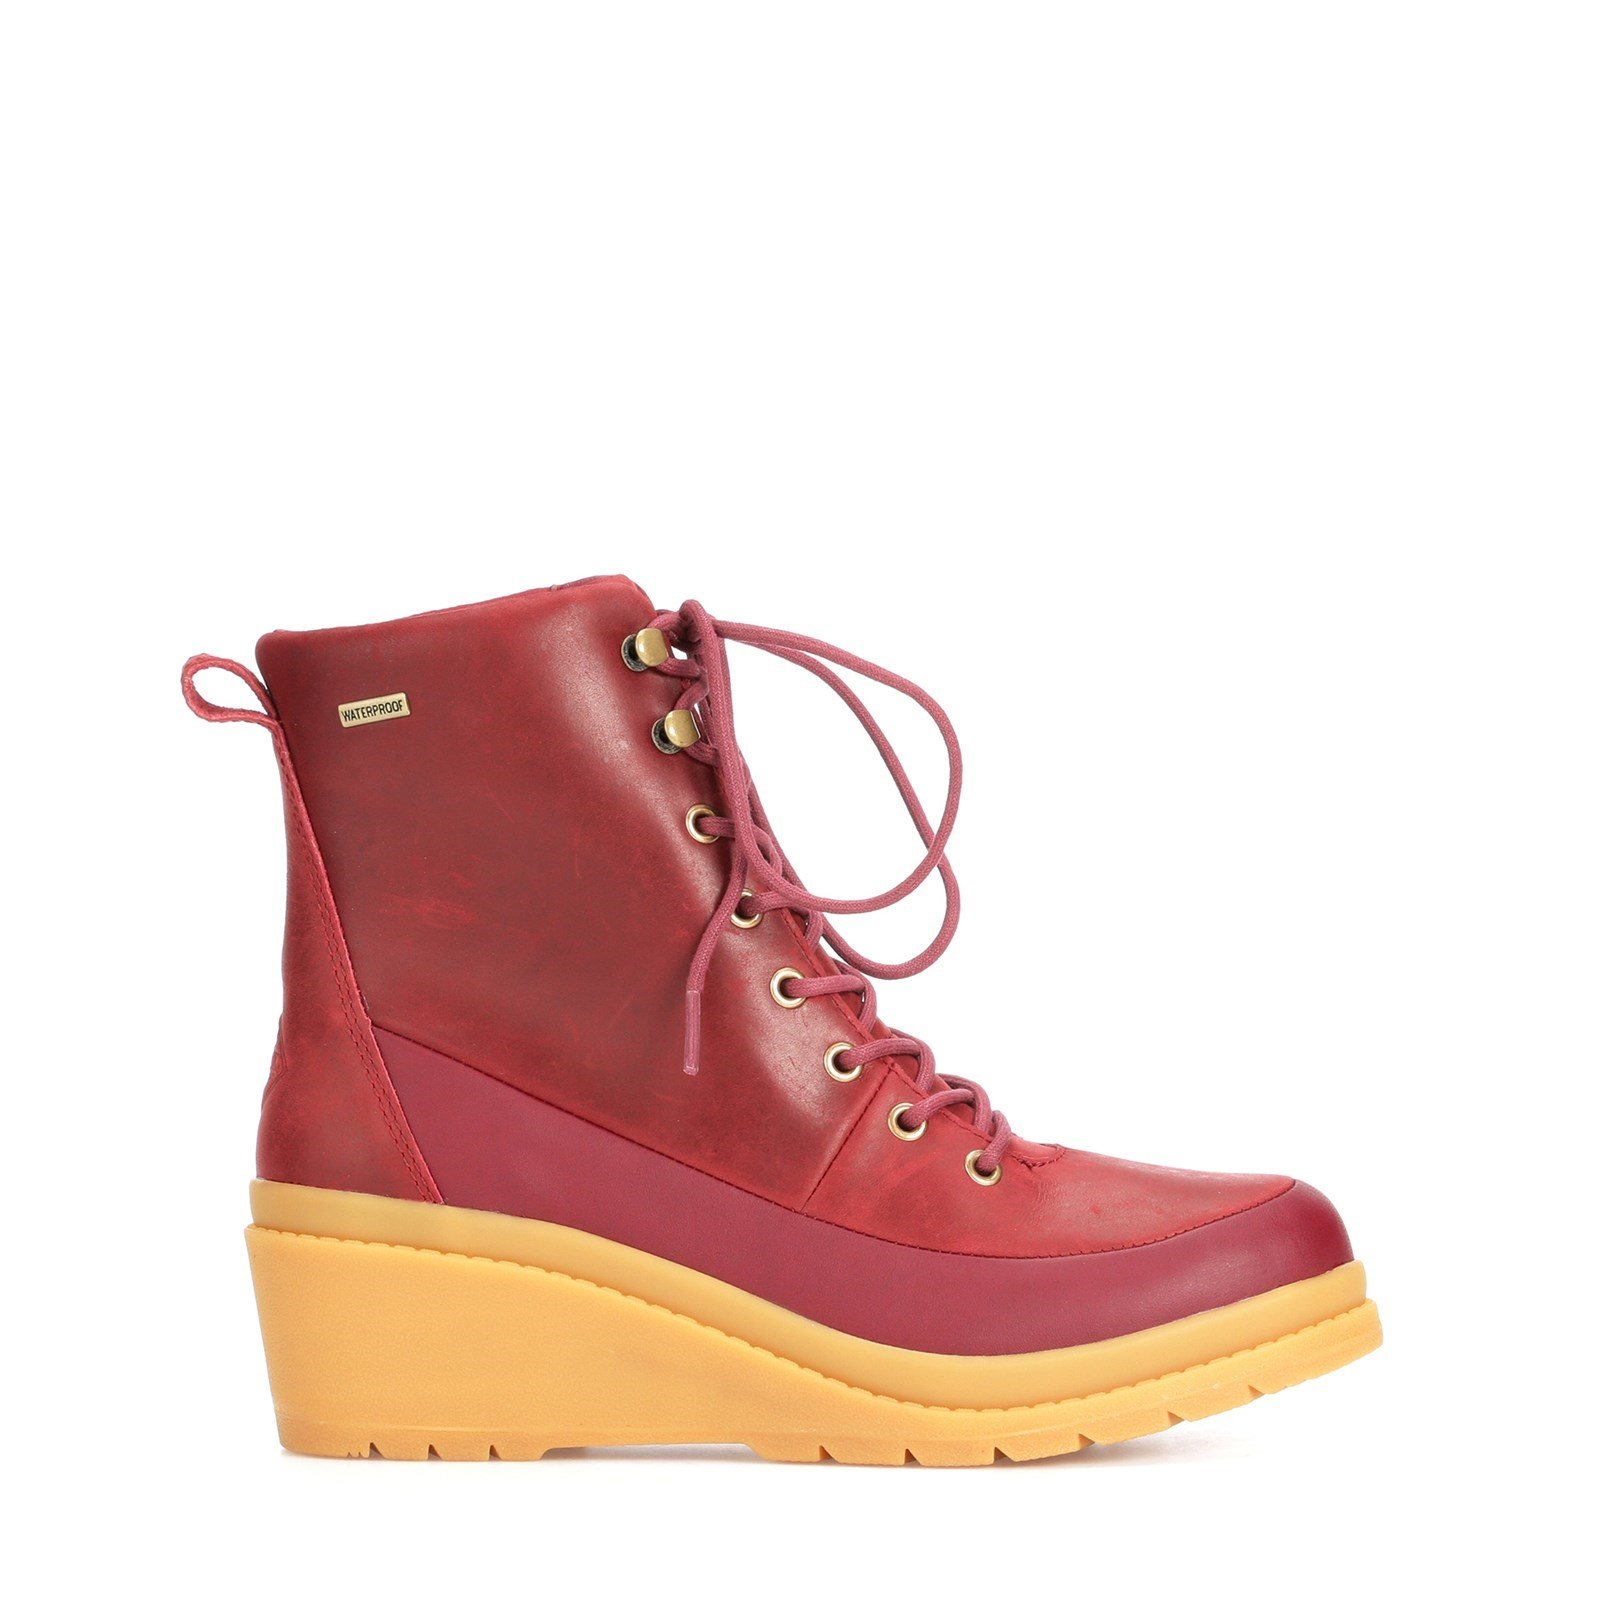 Muck Boots Women's Liberty Leather Ankle Boots Various Colours 31813 - Cordovan 9